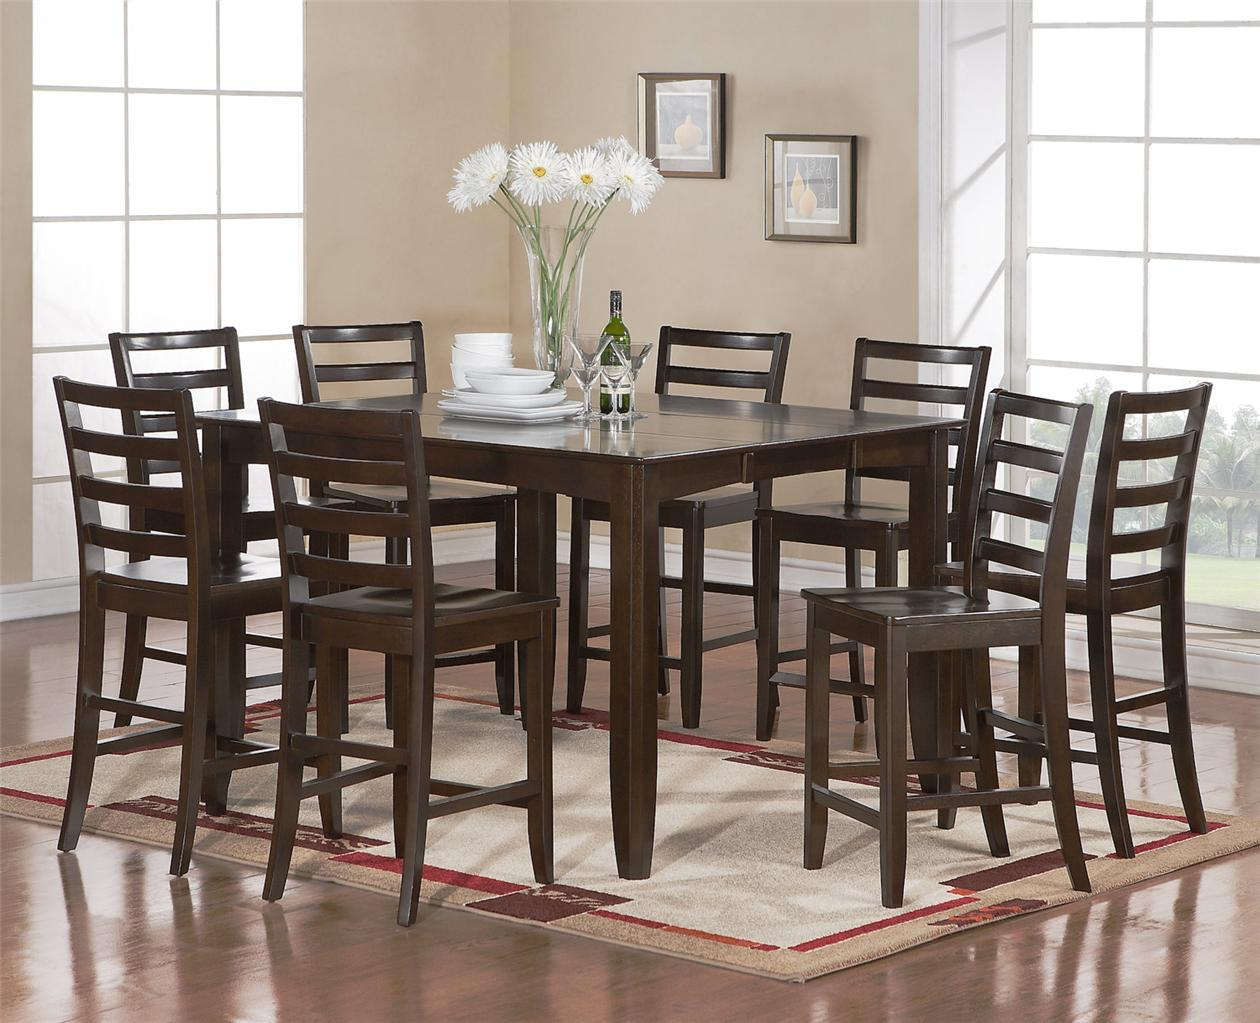 9 PC SQUARE COUNTER HEIGHT DINING ROOM TABLE WITH 8 WOOD